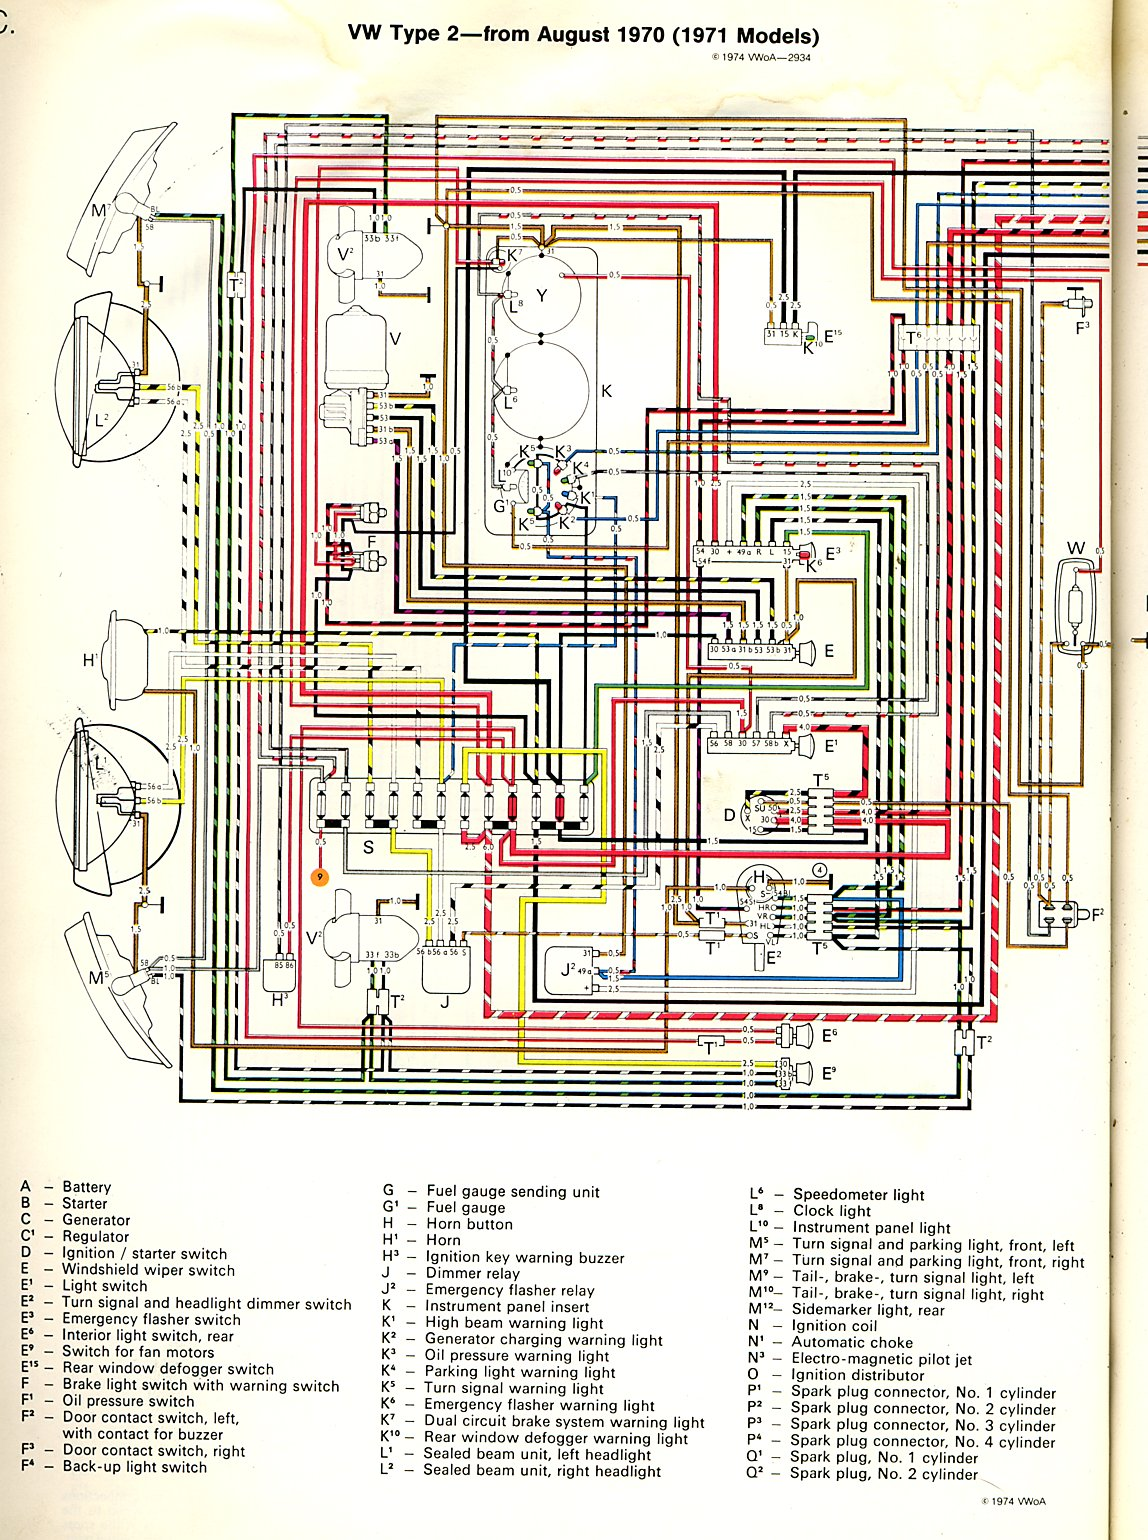 79 Rx7 Alternator Wiring Diagram Library Volkswagen Beetle Thesamba Com Type 2 Diagrams Rh Vw 1979